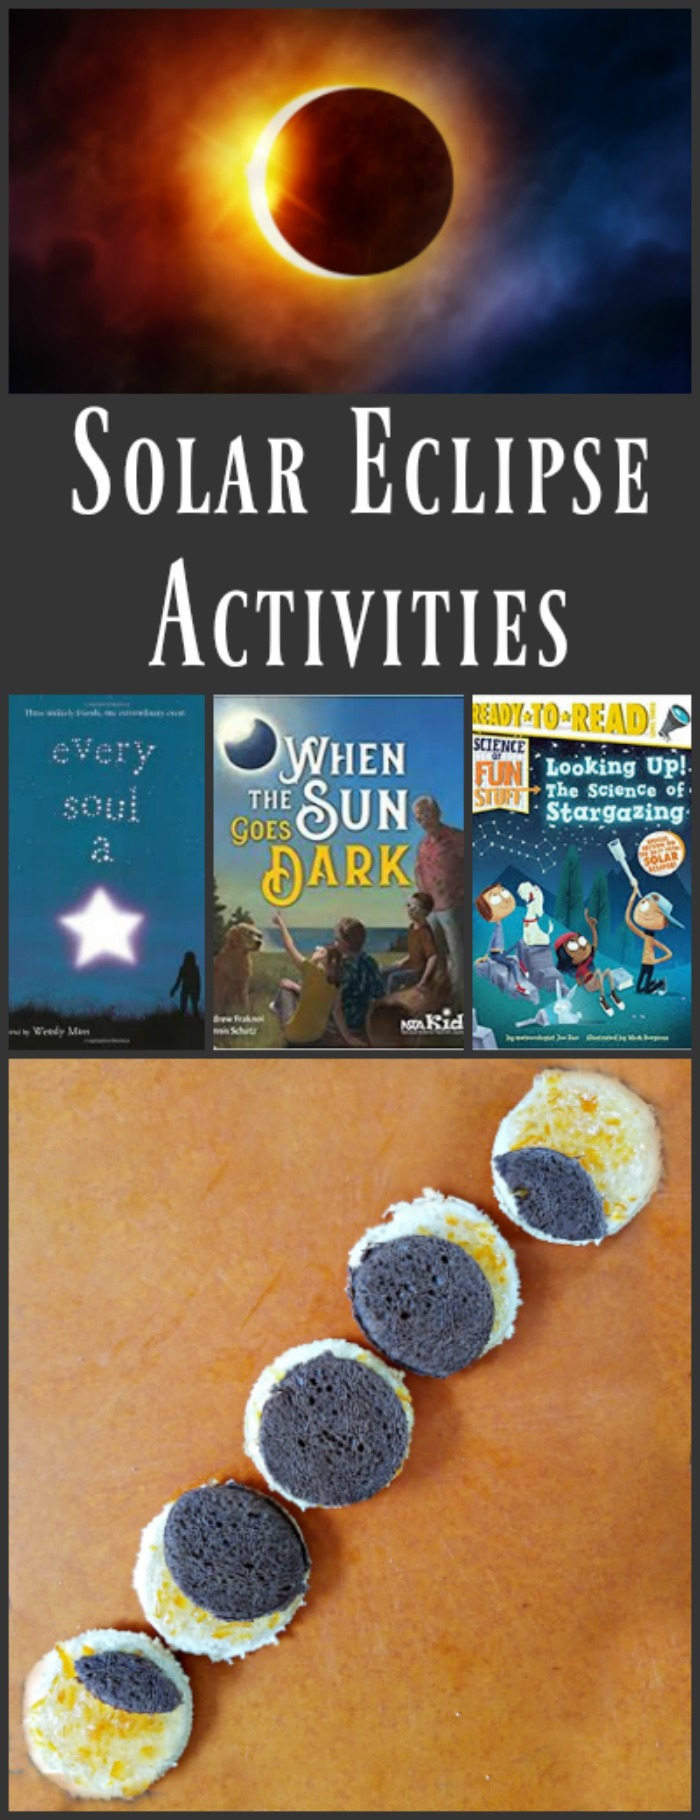 Solar eclipse activities: party food ideas, science activities and viewing tips!